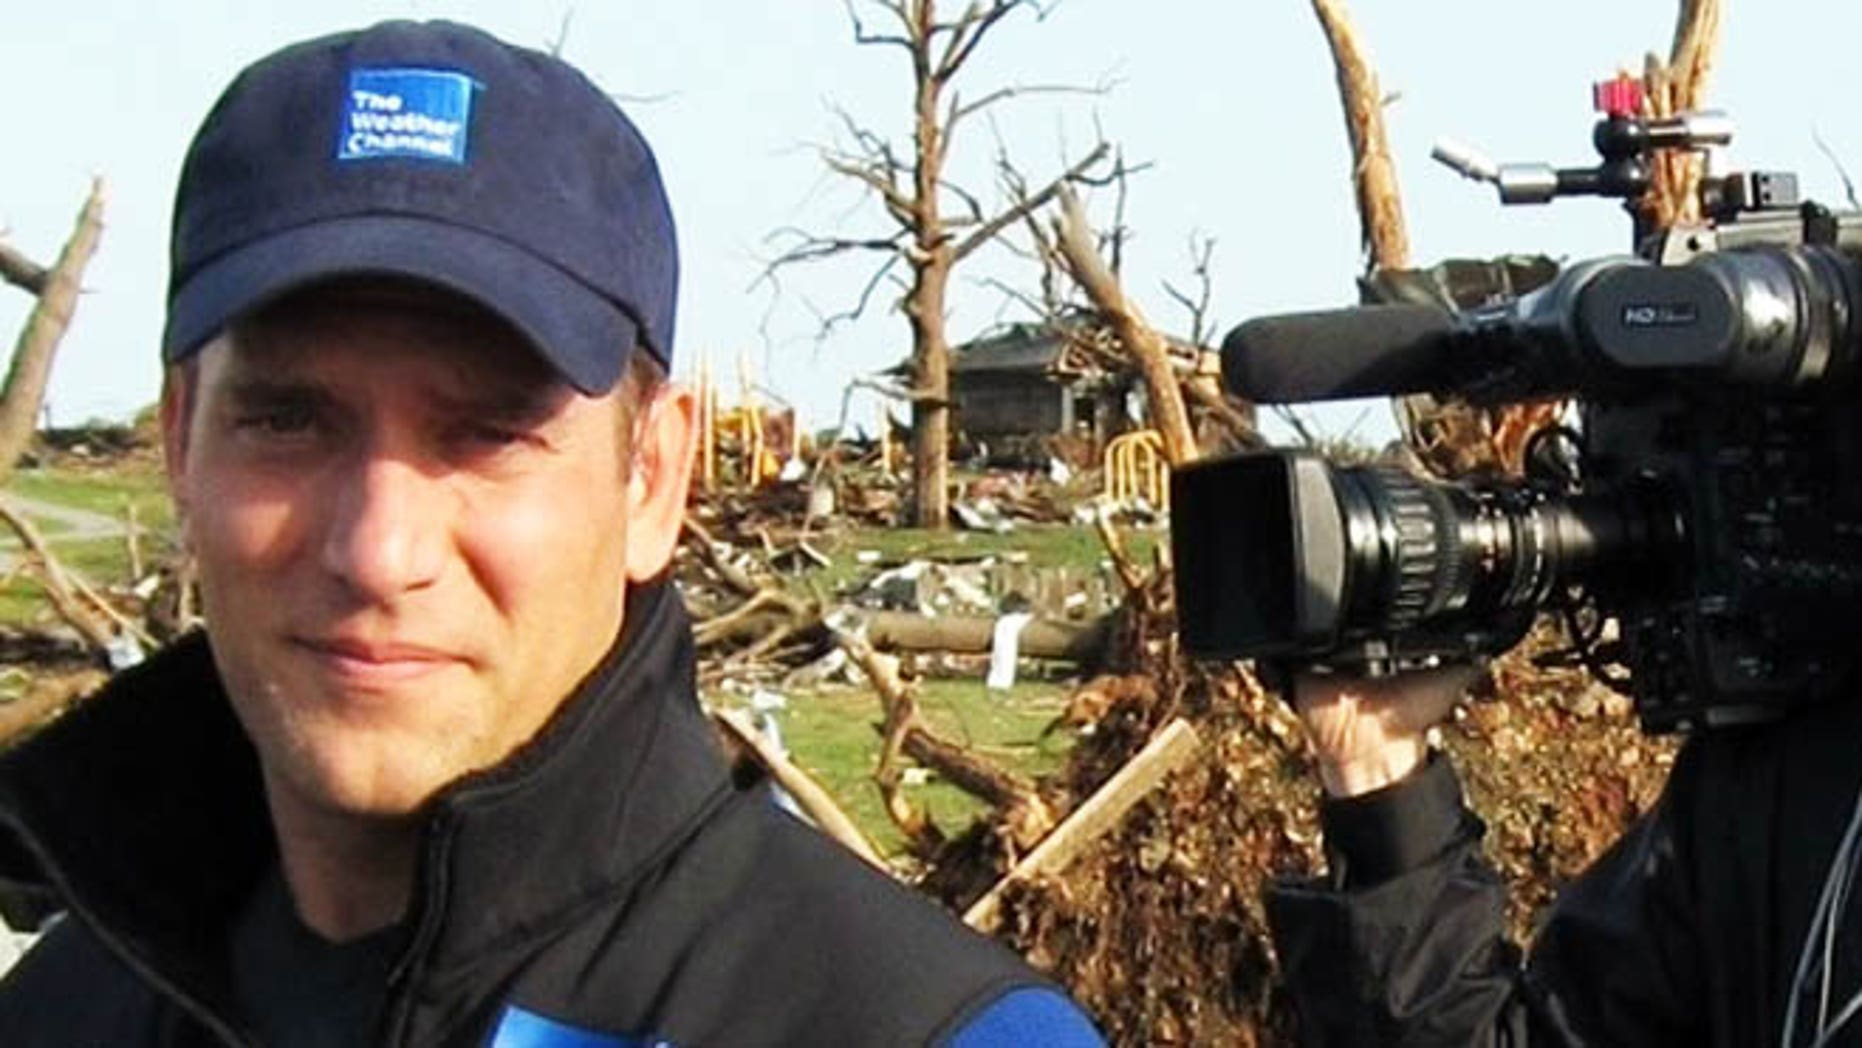 """This 2011 image released by the Weather Channel shows meteorologist Mike Bettes at the scene of a tornado in Joplin, Mo. Bettes will hit the road starting Monday for """"Tornado Week,"""" his network's version of """"Shark Week"""" thats usually its biggest scheduled programming event of the year. """"Tornado Week"""" will include a special about chasers caught up in the tornado in El Reno, Okla. A new series, """"Tornado Alley,"""" will premiere with storm footage, survivor tales and computer graphics to simulate actions of certain tornadoes. (AP Photo/Weather Channel)"""